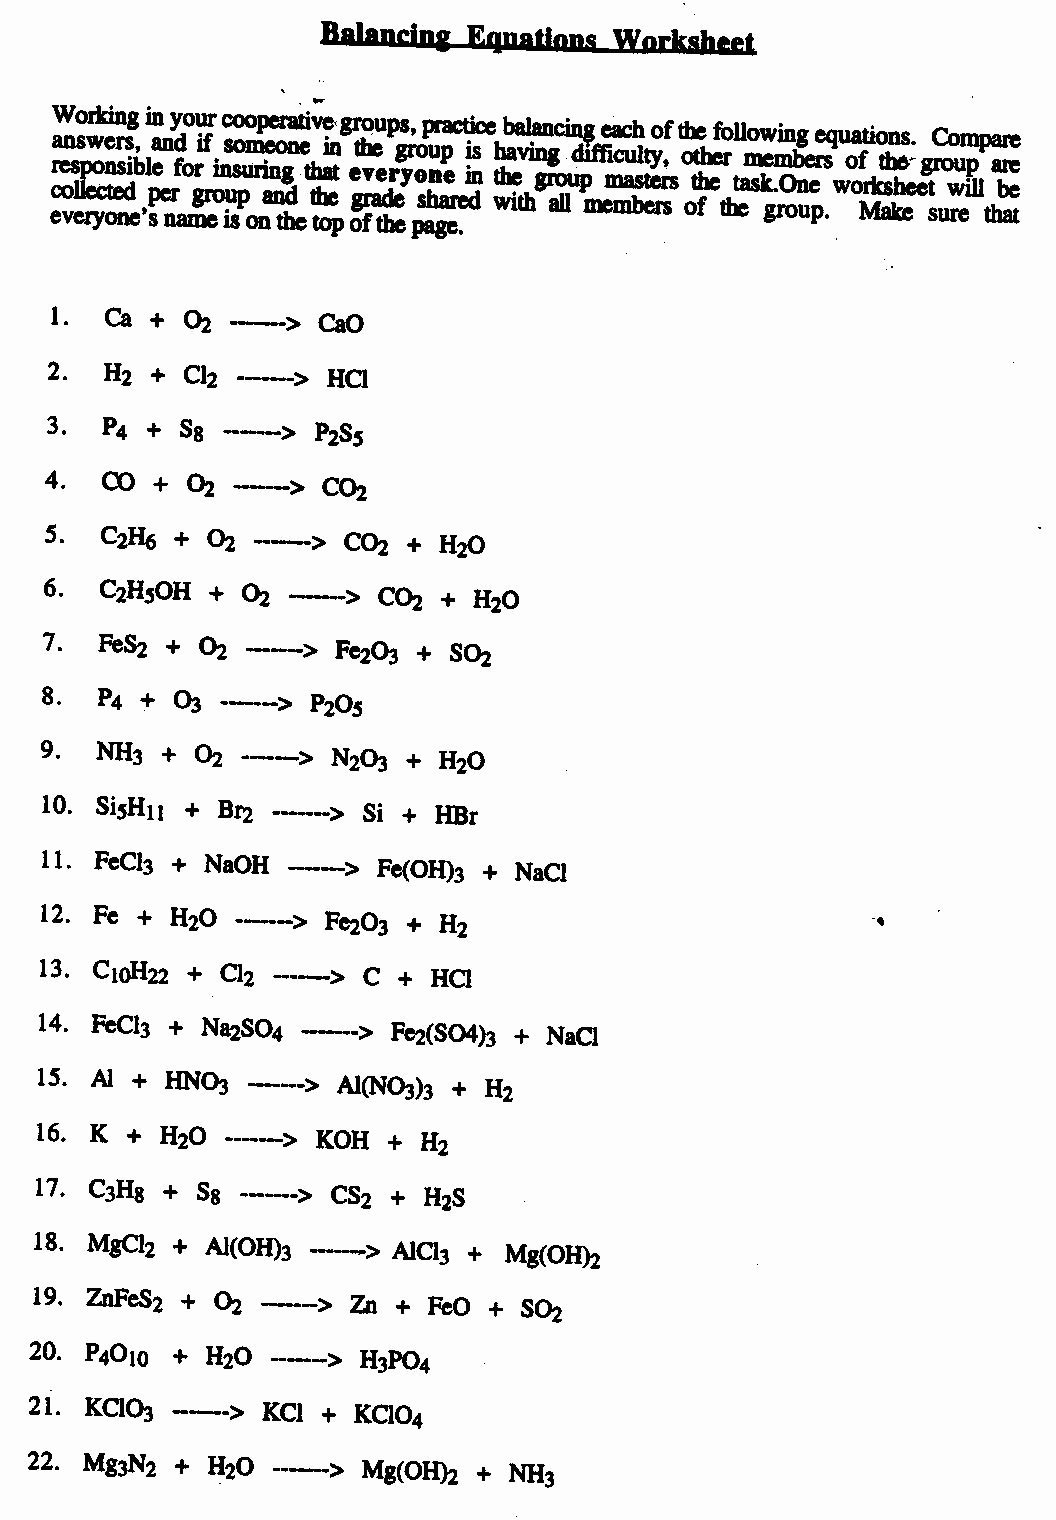 Balancing Equations Worksheet Answers Chemistry Fresh 12 Best Of Types Chemical Reactions Worksheet